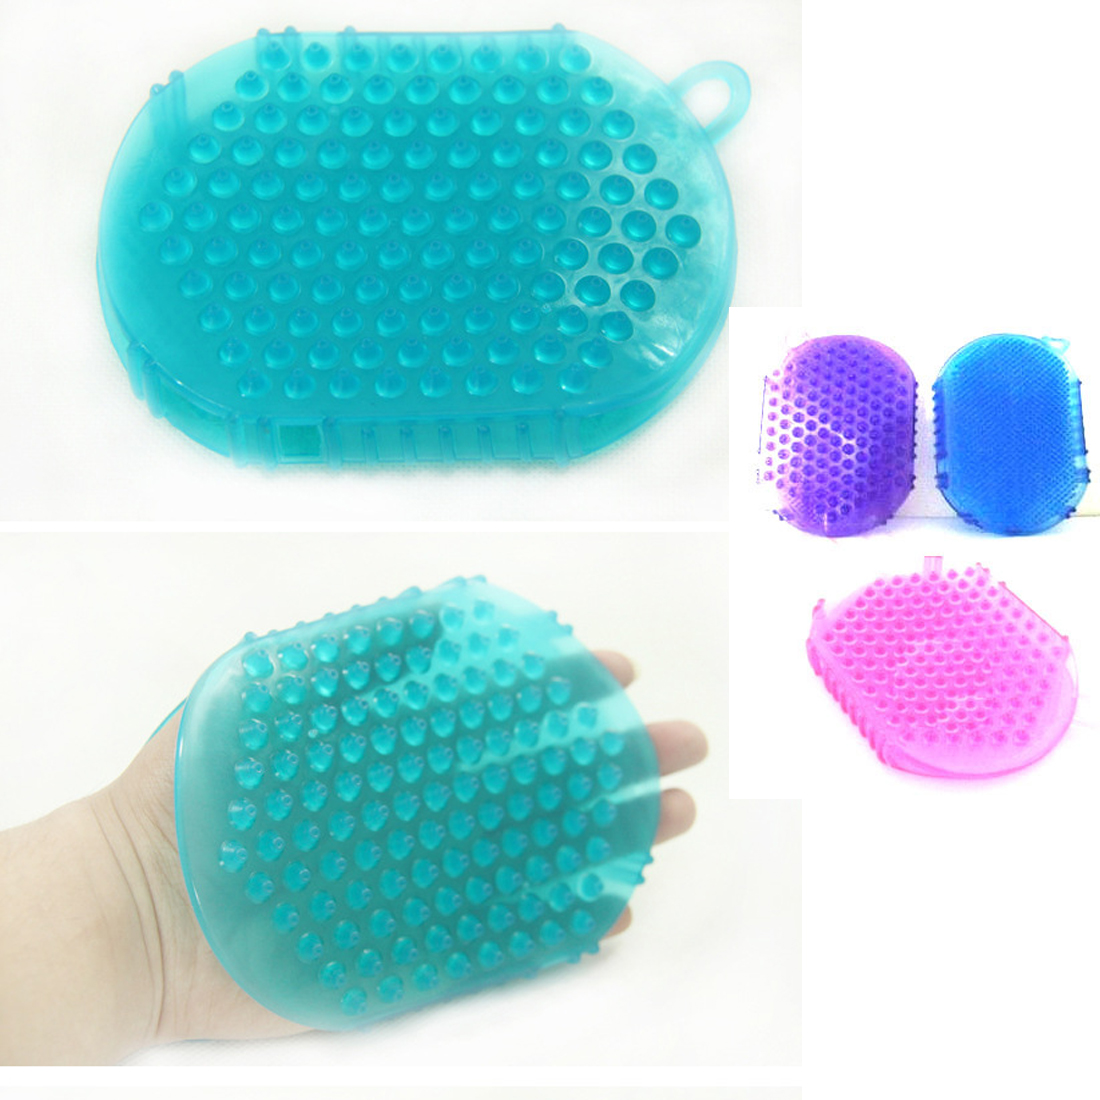 New 1 PCS Silicone Double Sided Massage Lymph Glove Anti Cellulite Slim Body Bath Shower Scrub Brush Random Colors